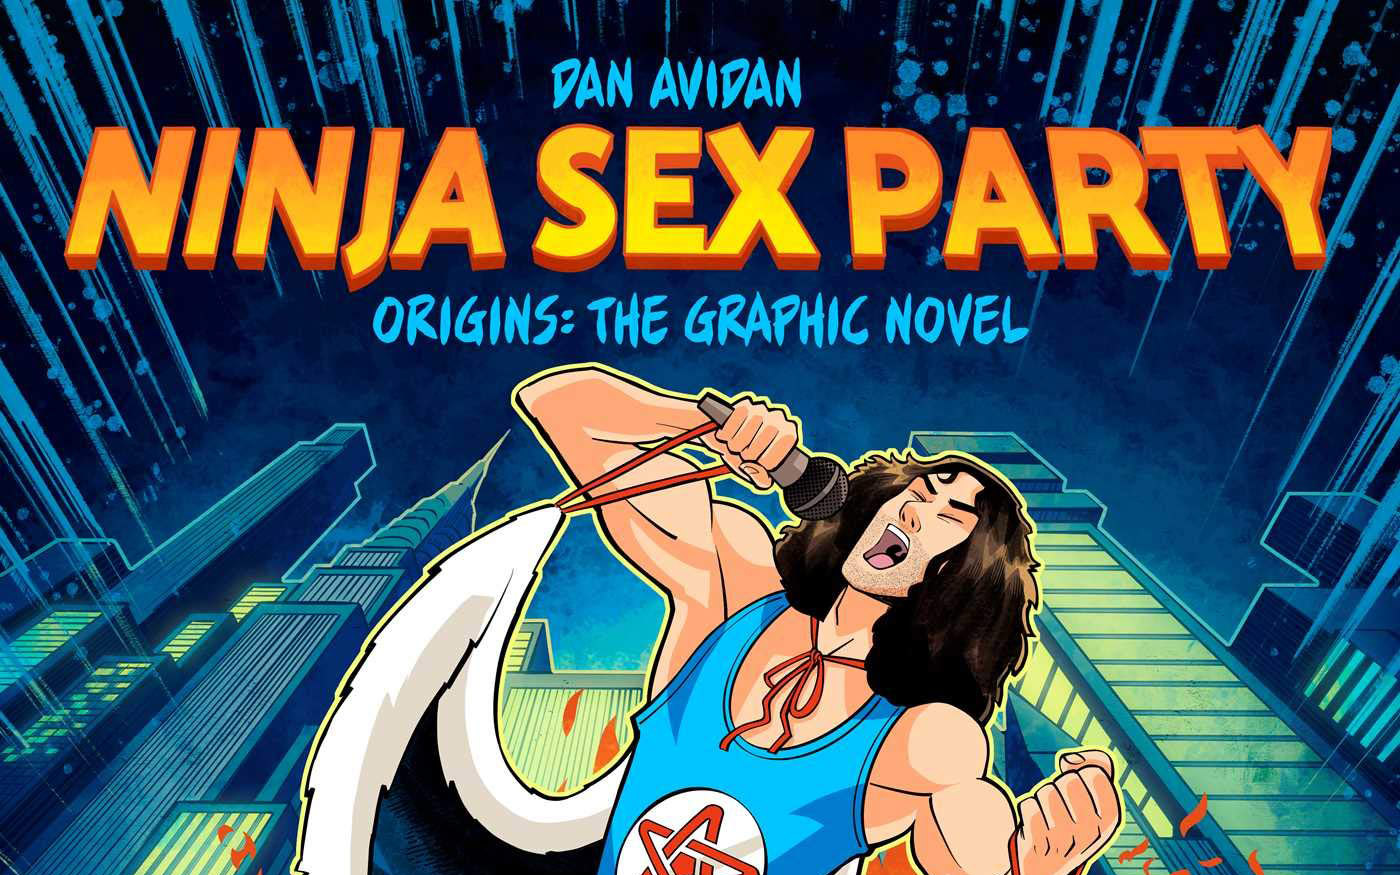 Ninja Sex Party Origins: The Graphic Novel